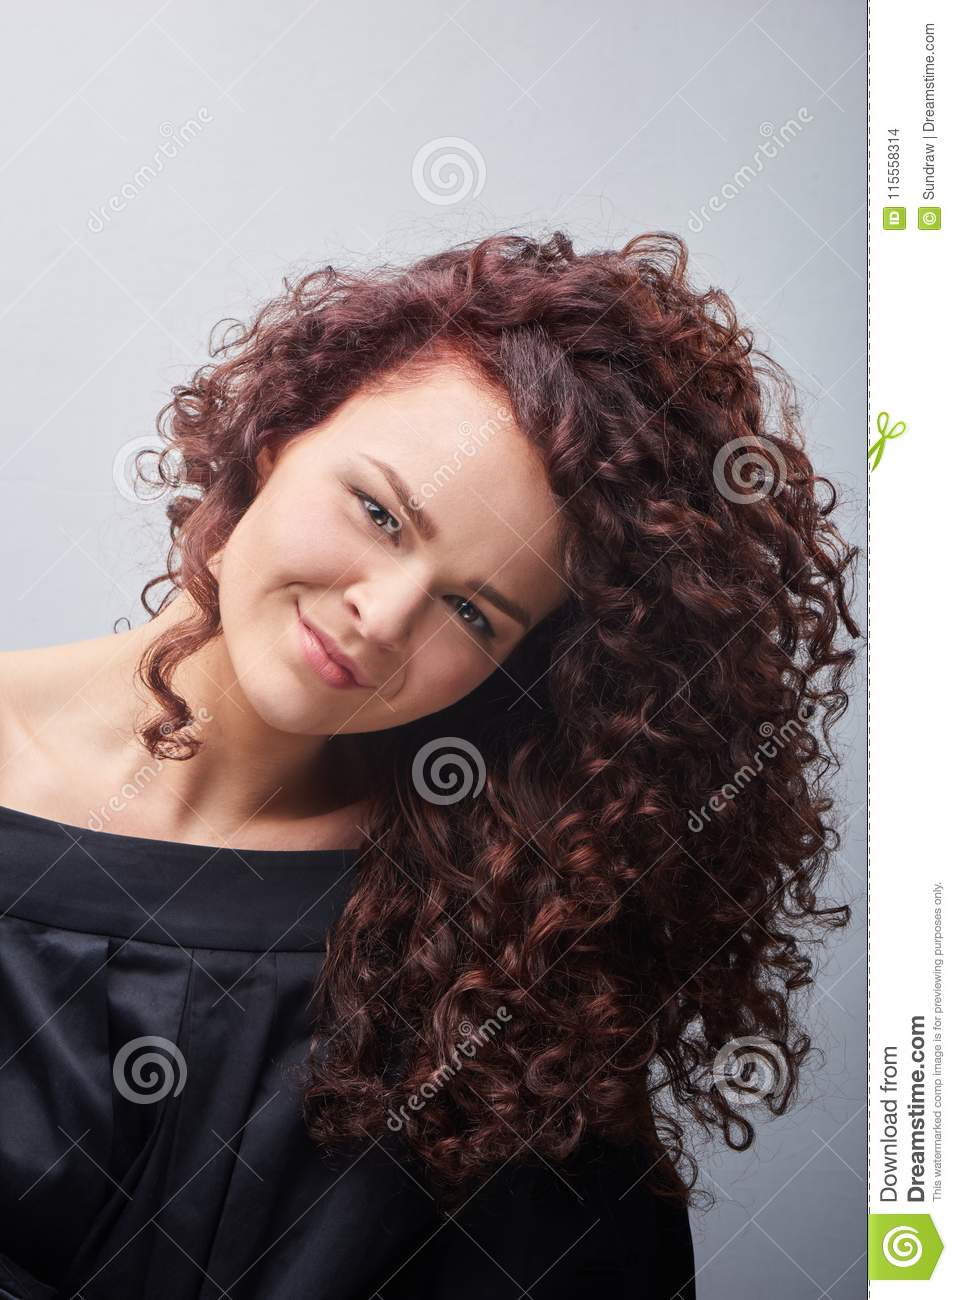 Portrait Of Young Woman With Trend Curly Hair Stock Photo Image Of